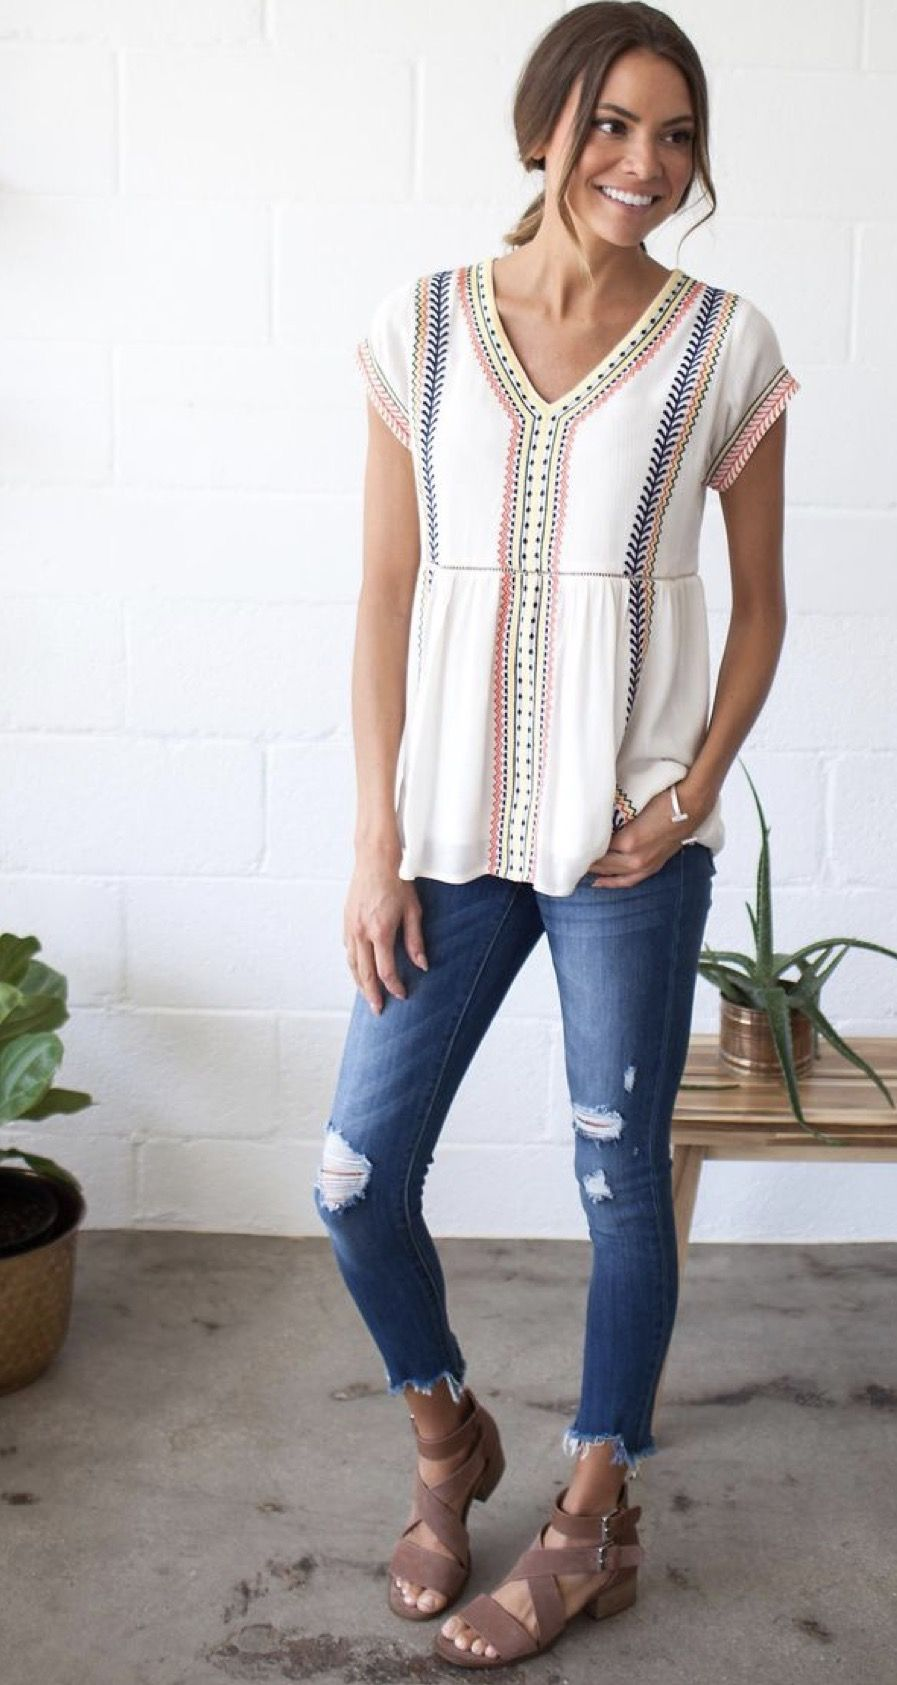 SIGN UP for STITCH FIX NOW! May 2017 Spring and Summer Trends for Stitch fix the personal styling service. Always be on trend with this amazing subscription box. Use this pin for tips and trends for Spring 2017. Click pic to get started! #Sponsored #Stitchfix